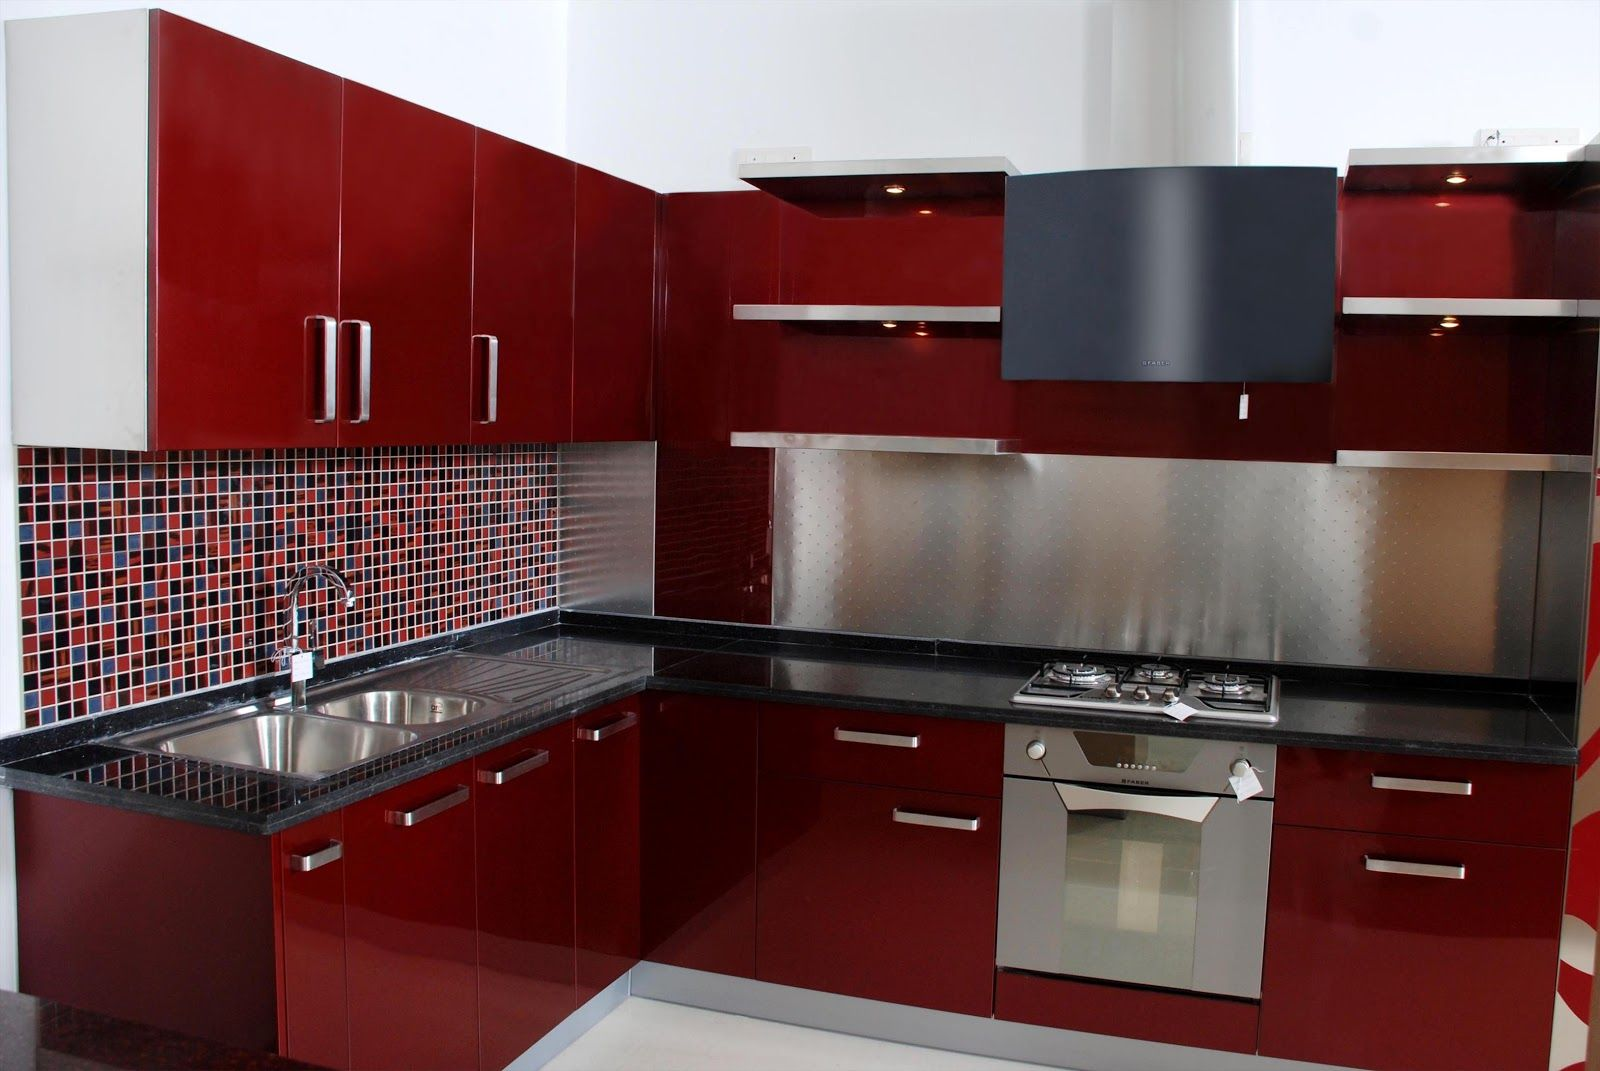 Parallel kitchen design india google search kitchen for Kitchen interior design images